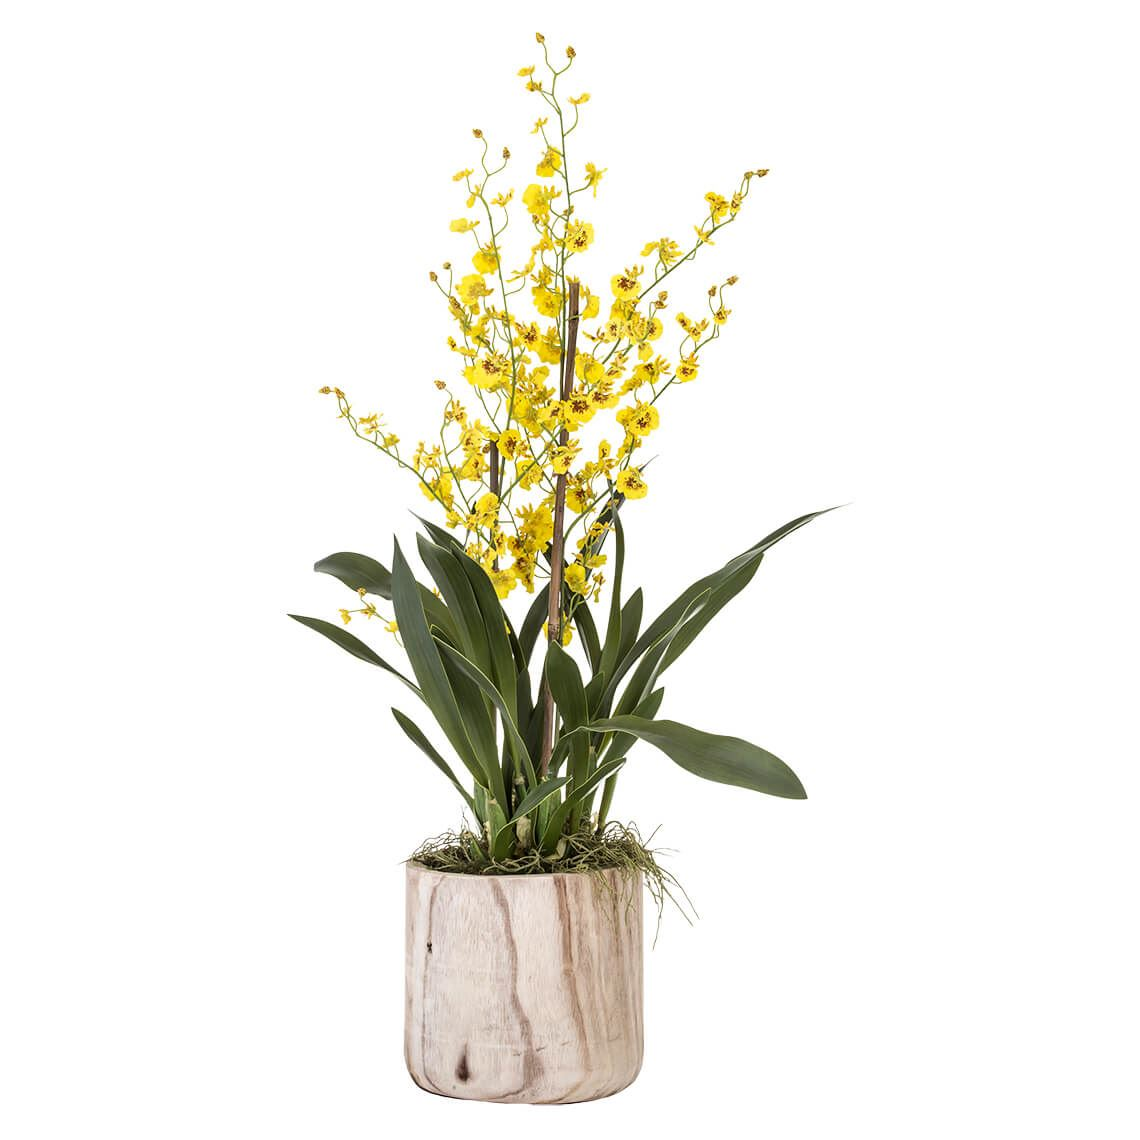 Dancing Orchid Size W 61cm x D 50cm x H 100cm in Yellow Freedom by Freedom, a Plants for sale on Style Sourcebook